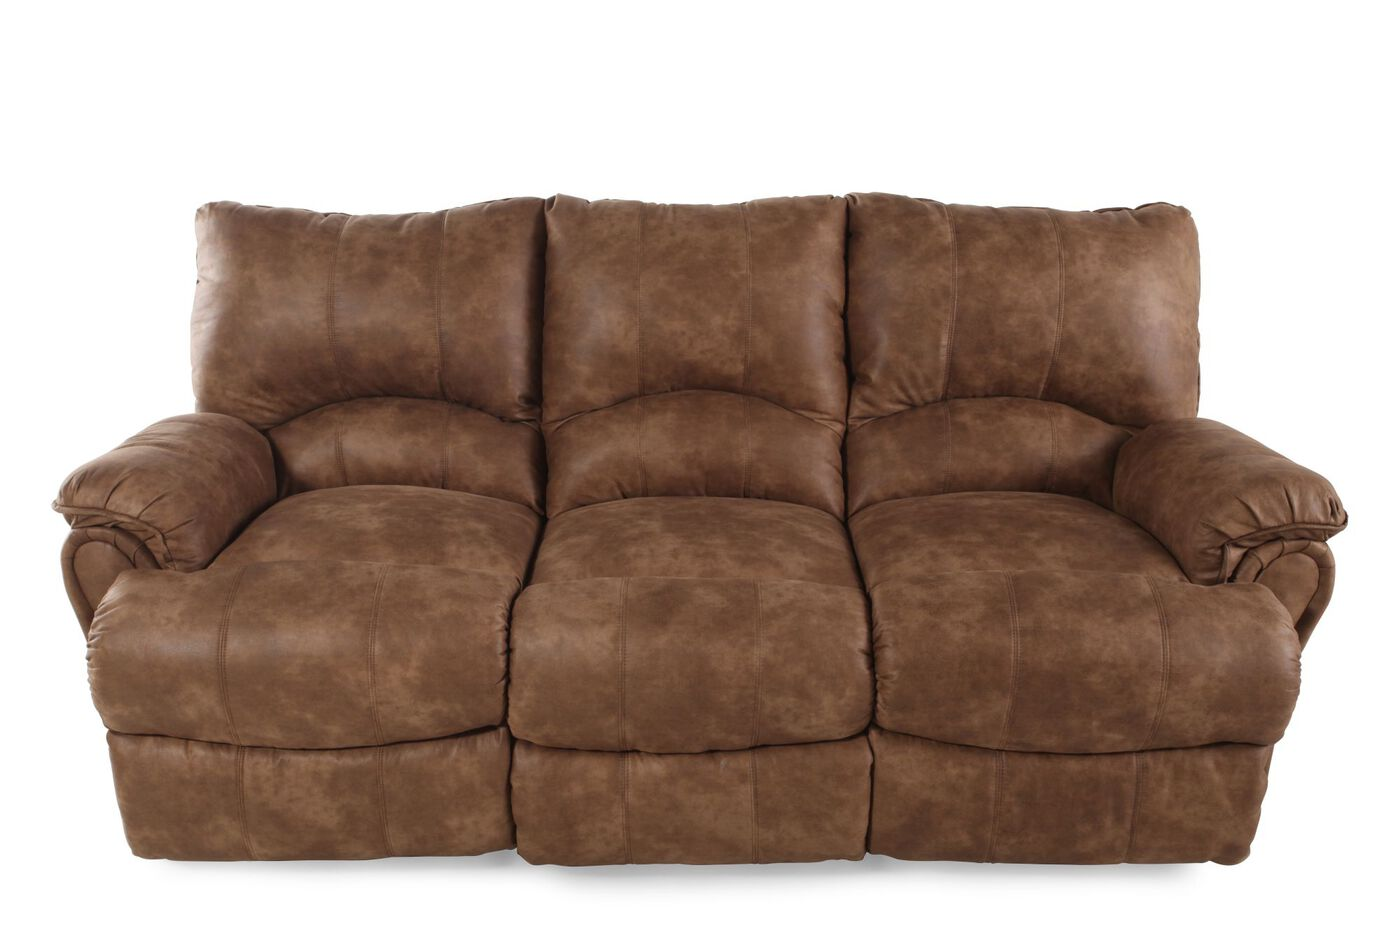 Lane Alpine Caramel Reclining Sofa Mathis Brothers Furniture